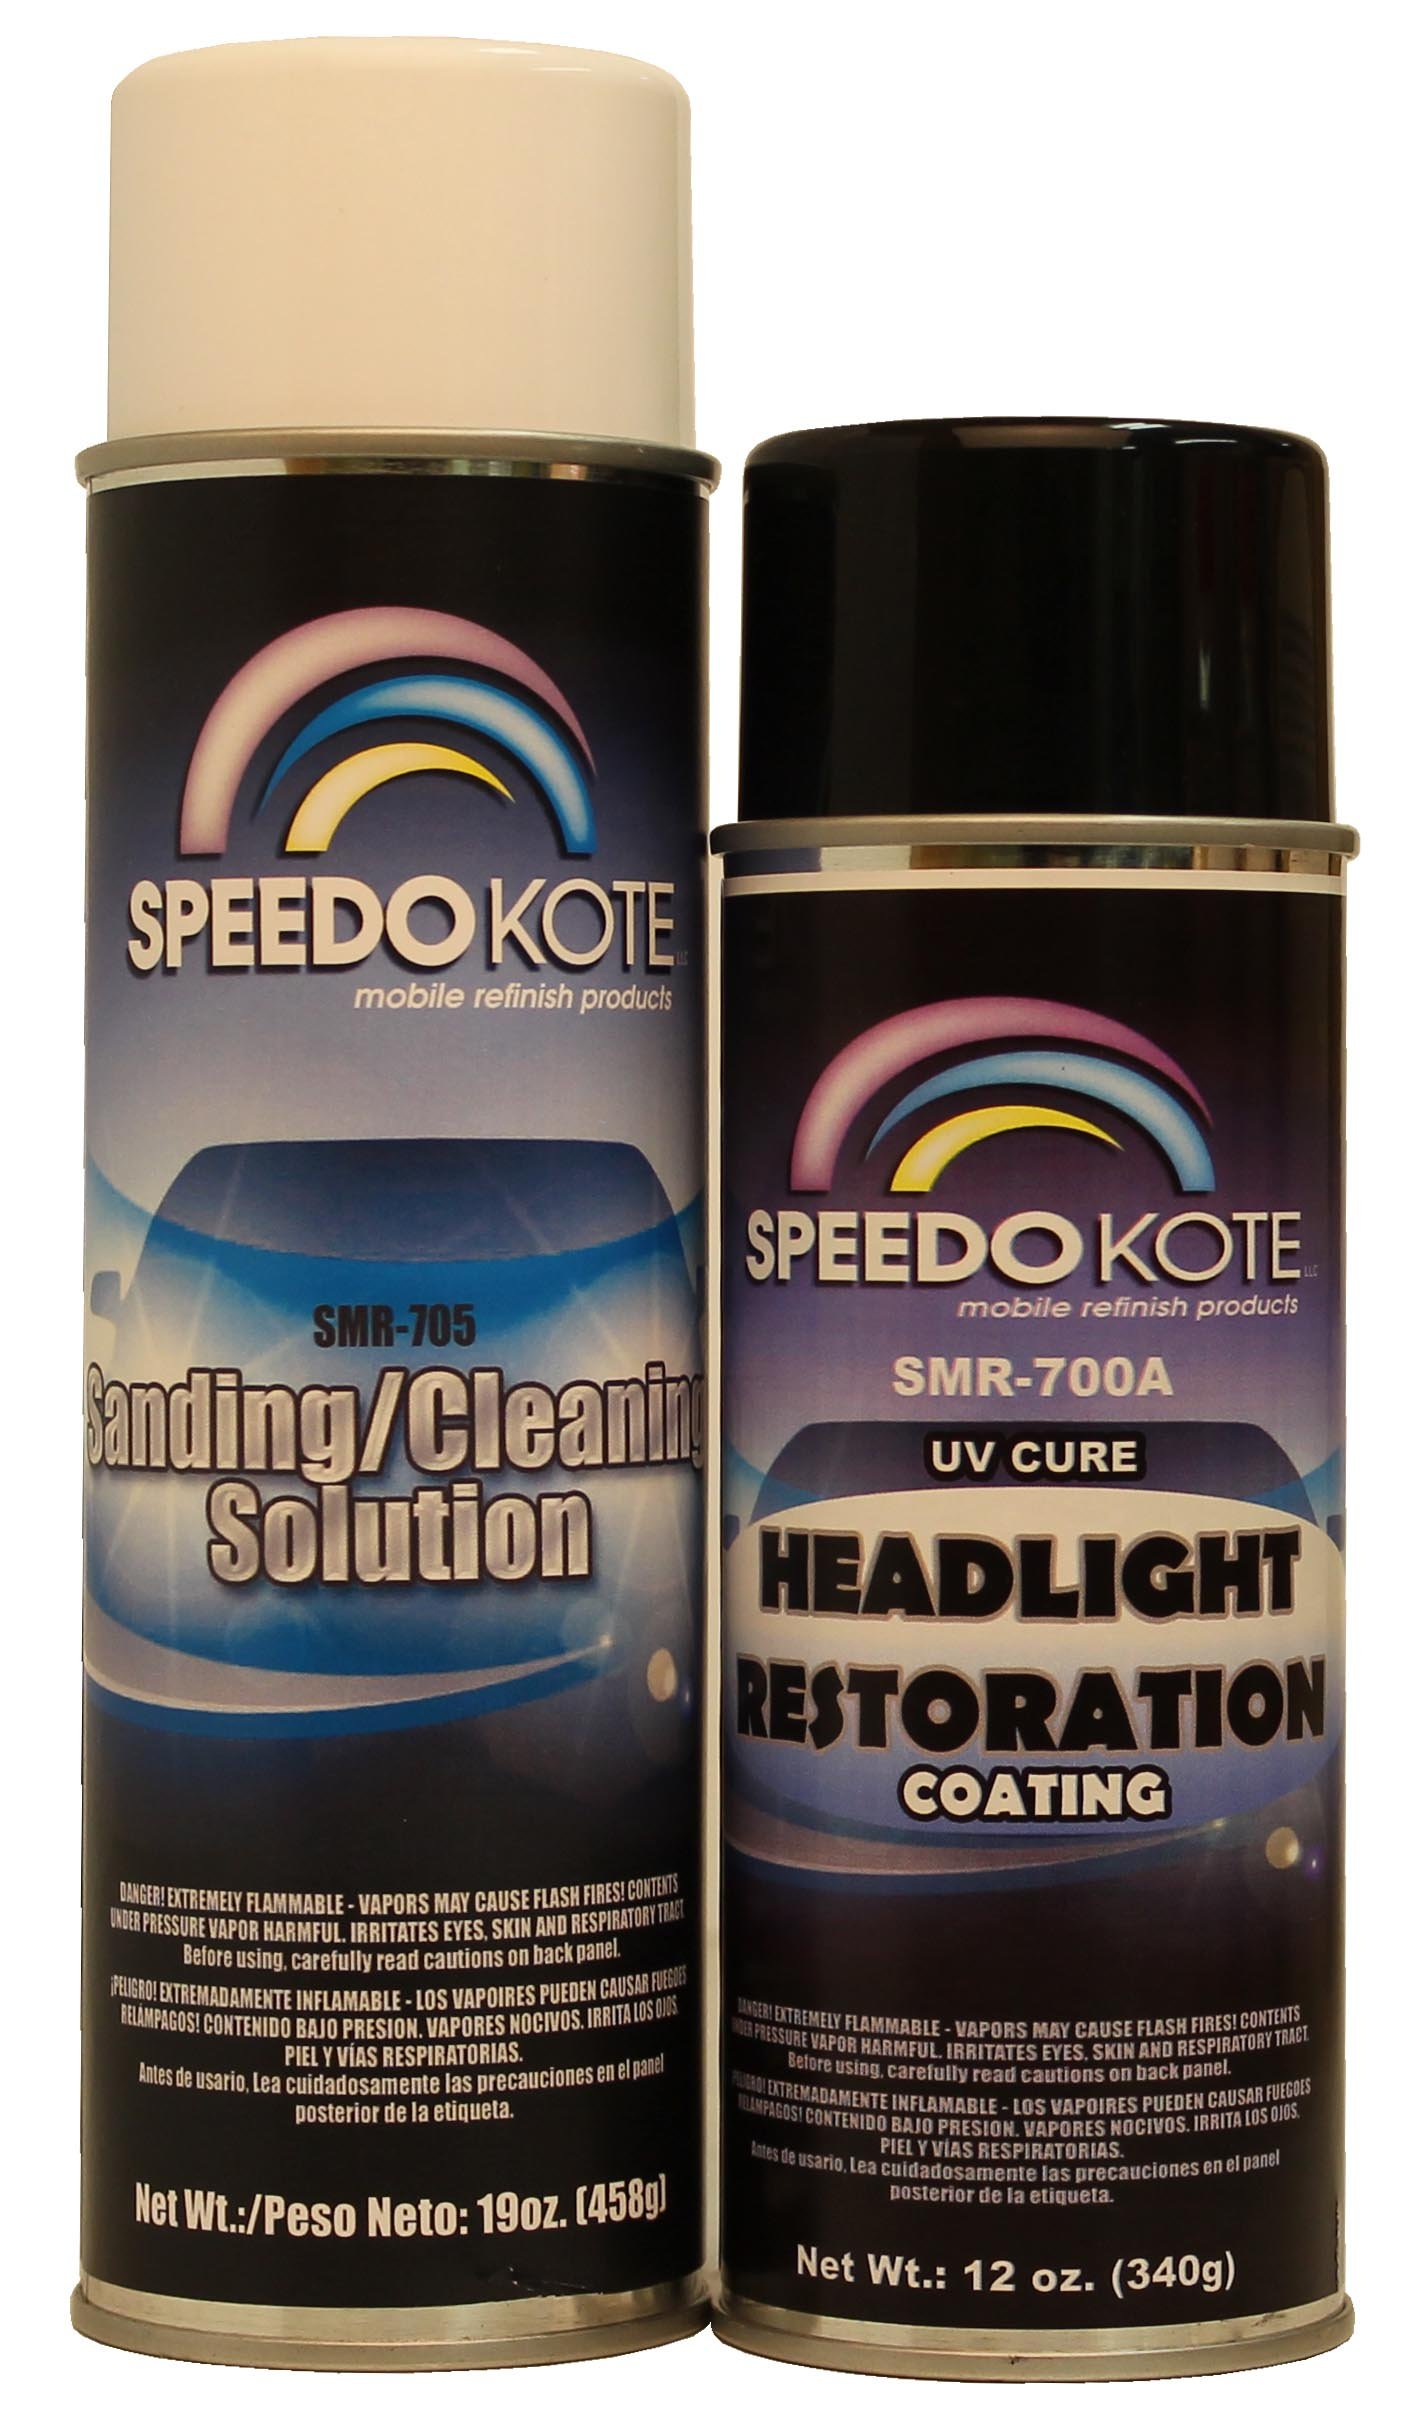 SpeedoKote SMR-700A/705 - Professional Headlight Restoration Aerosol Kit, UV Cure coating, SMR-700A/705, Enough to restore 12 car's headlights to new condition